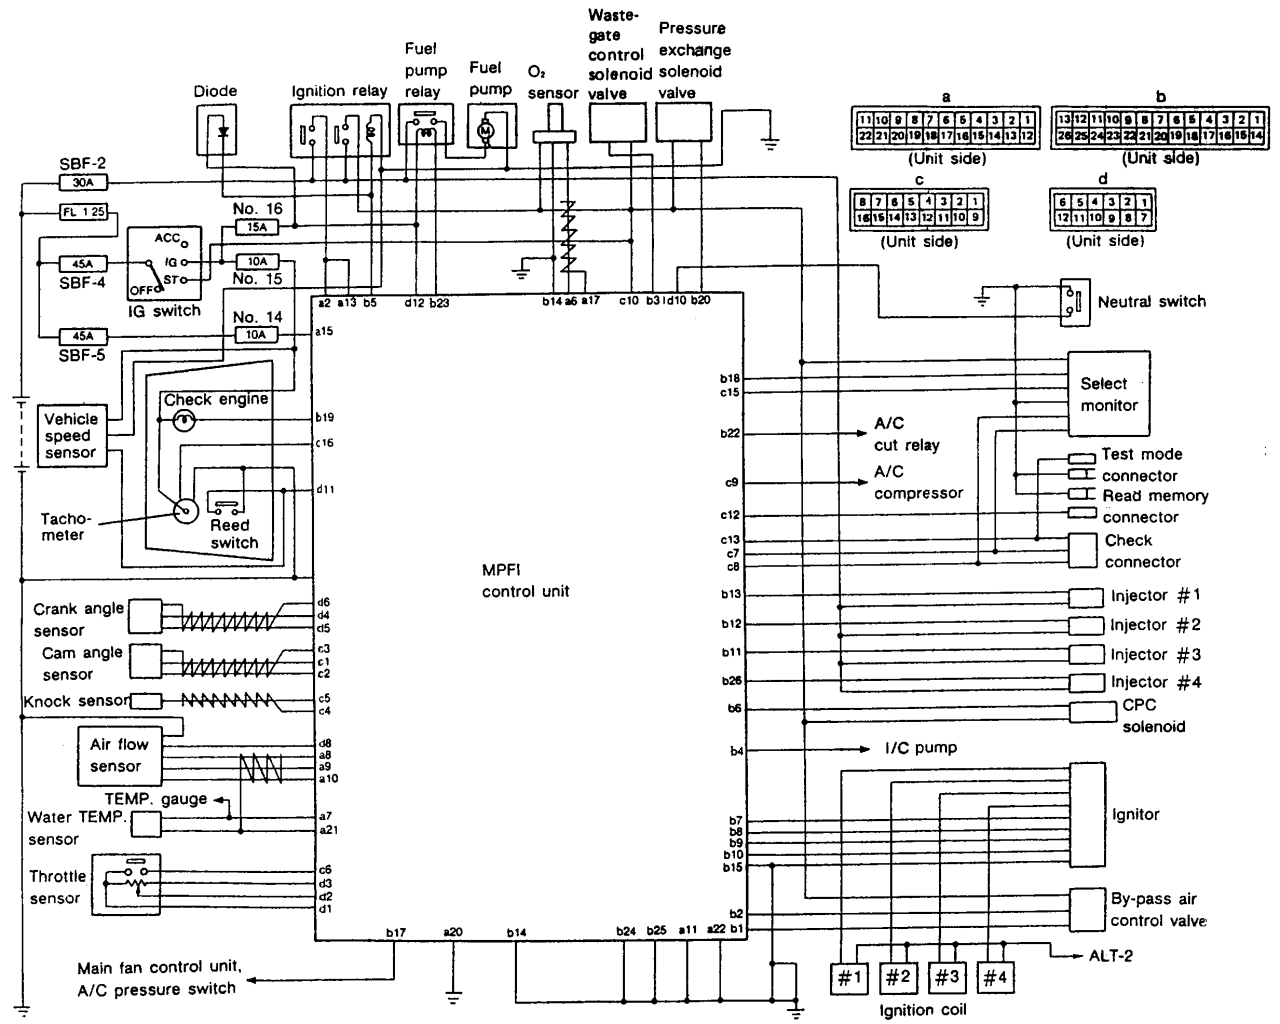 1998 subaru legacy engine schematic